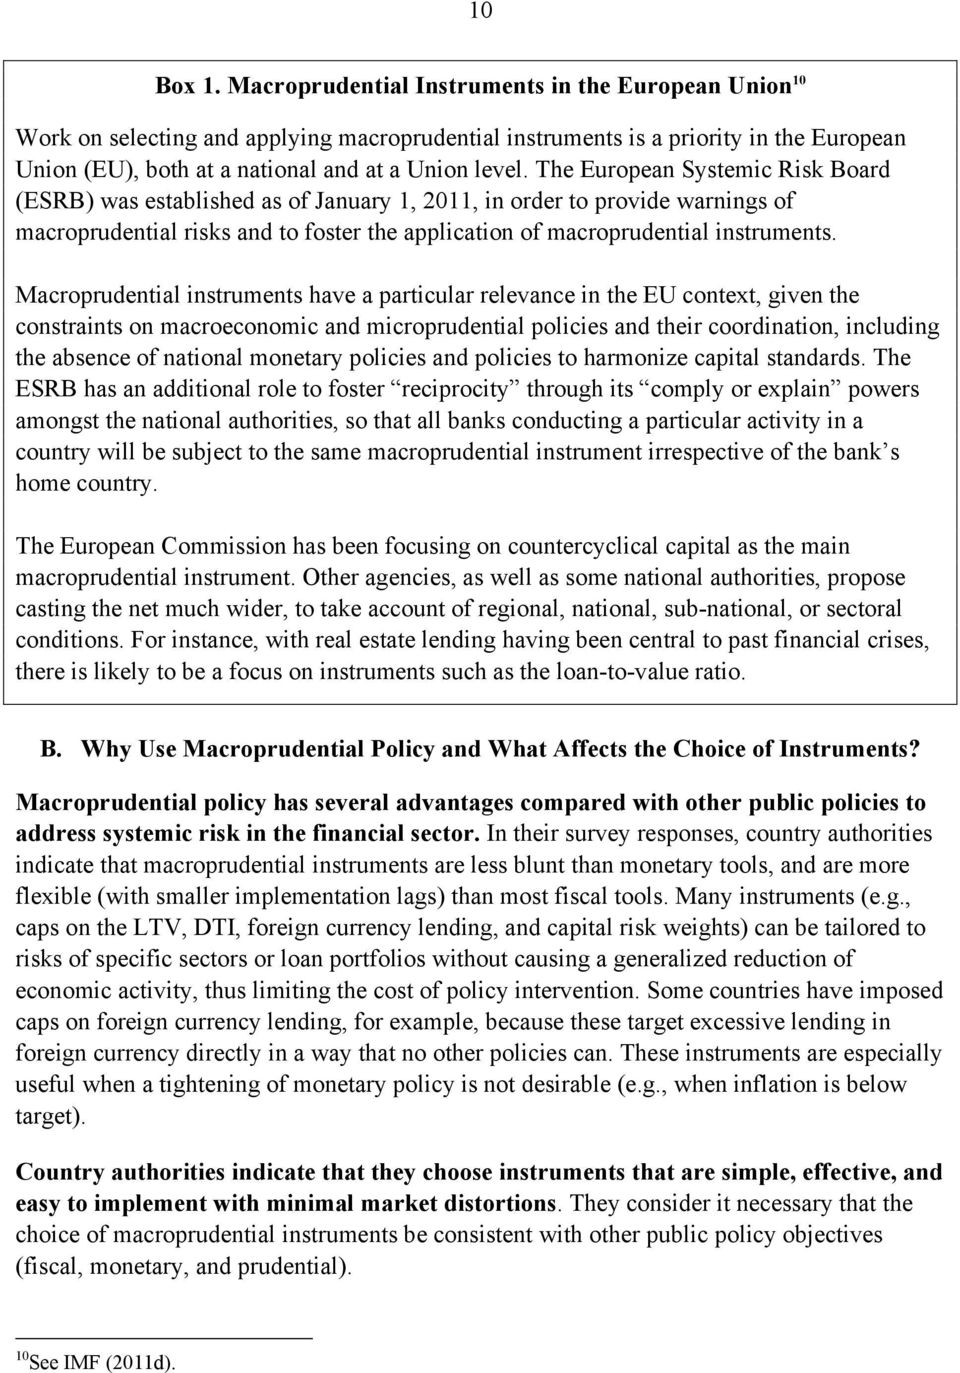 The European Systemic Risk Board (ESRB) was established as of January 1, 2011, in order to provide warnings of macroprudential risks and to foster the application of macroprudential instruments.